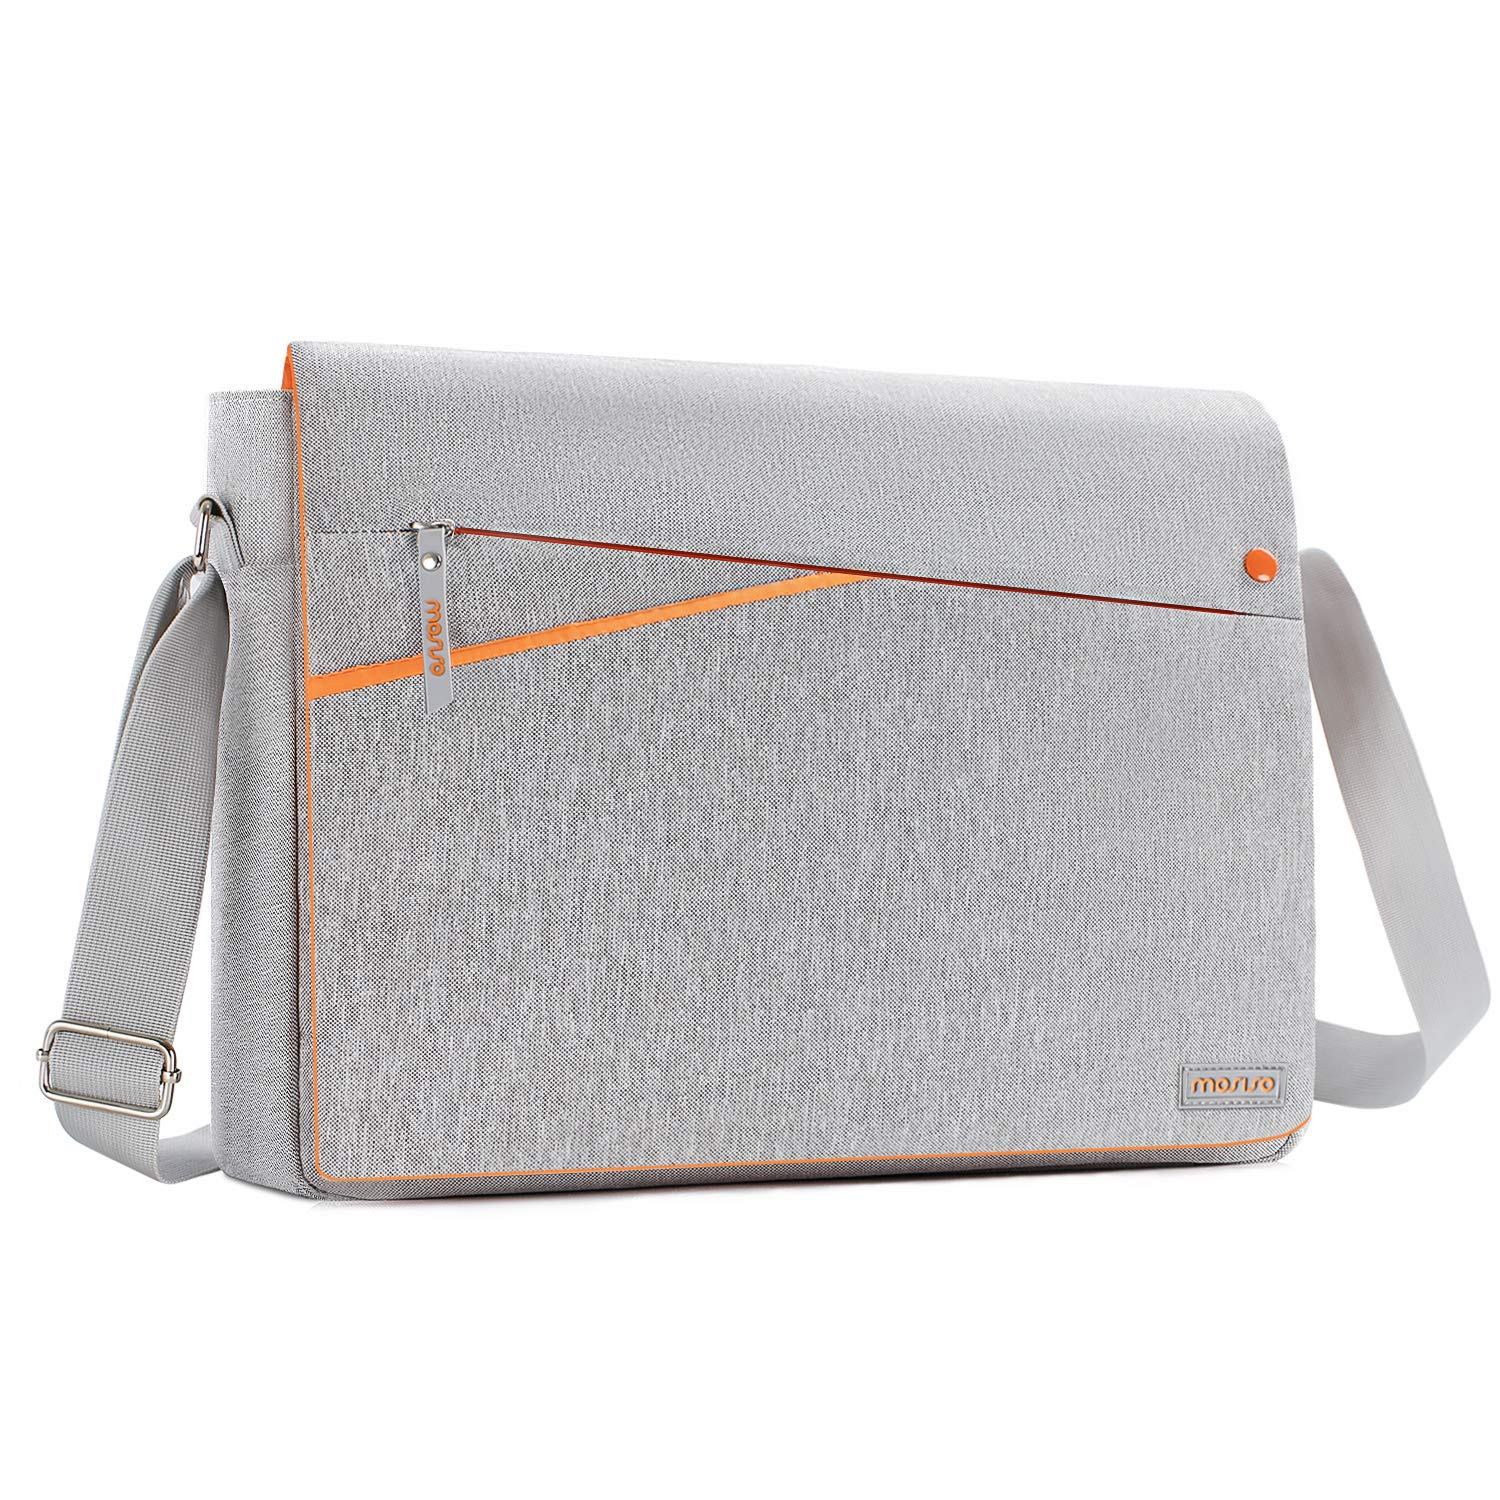 MOSISO Laptop Shoulder Bag Compatible 13-13.3 Inch MacBook Pro, MacBook Air, Notebook Computer with Two Side Pockets Storage, Protective Spill-Resistant Polyester Carrying Case Cover, Gray and Orange